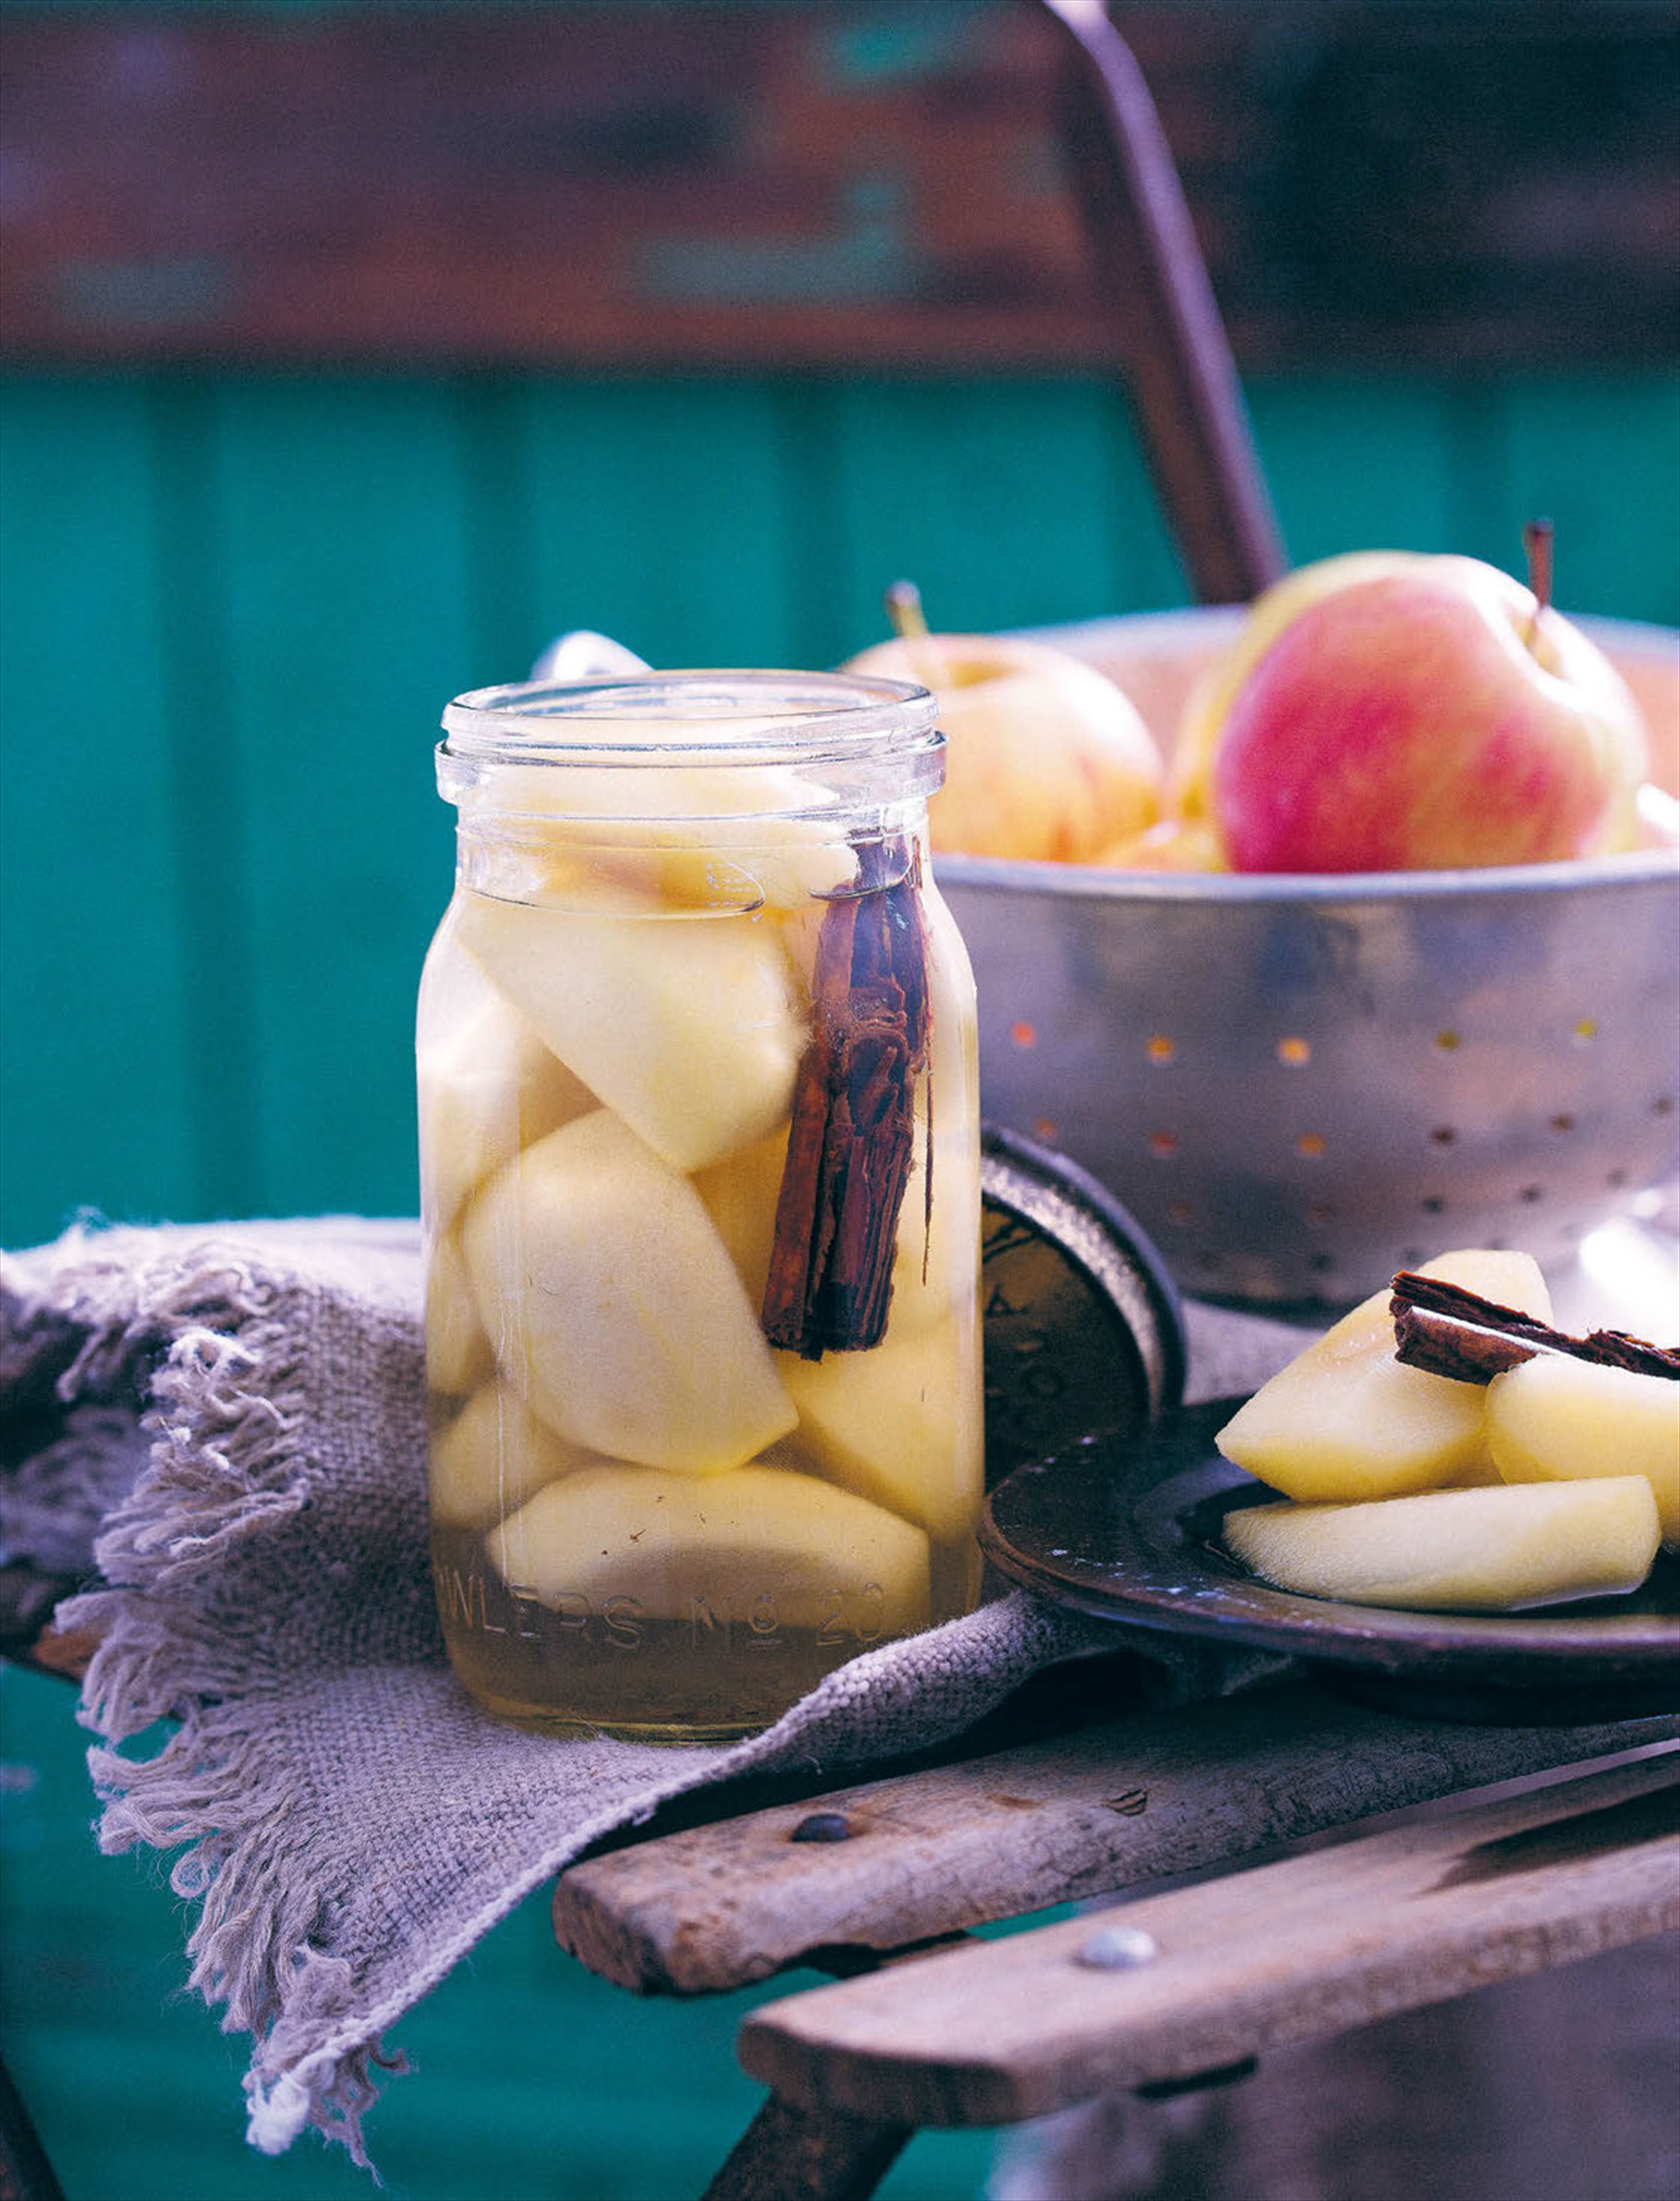 Preserved apples with cinnamon